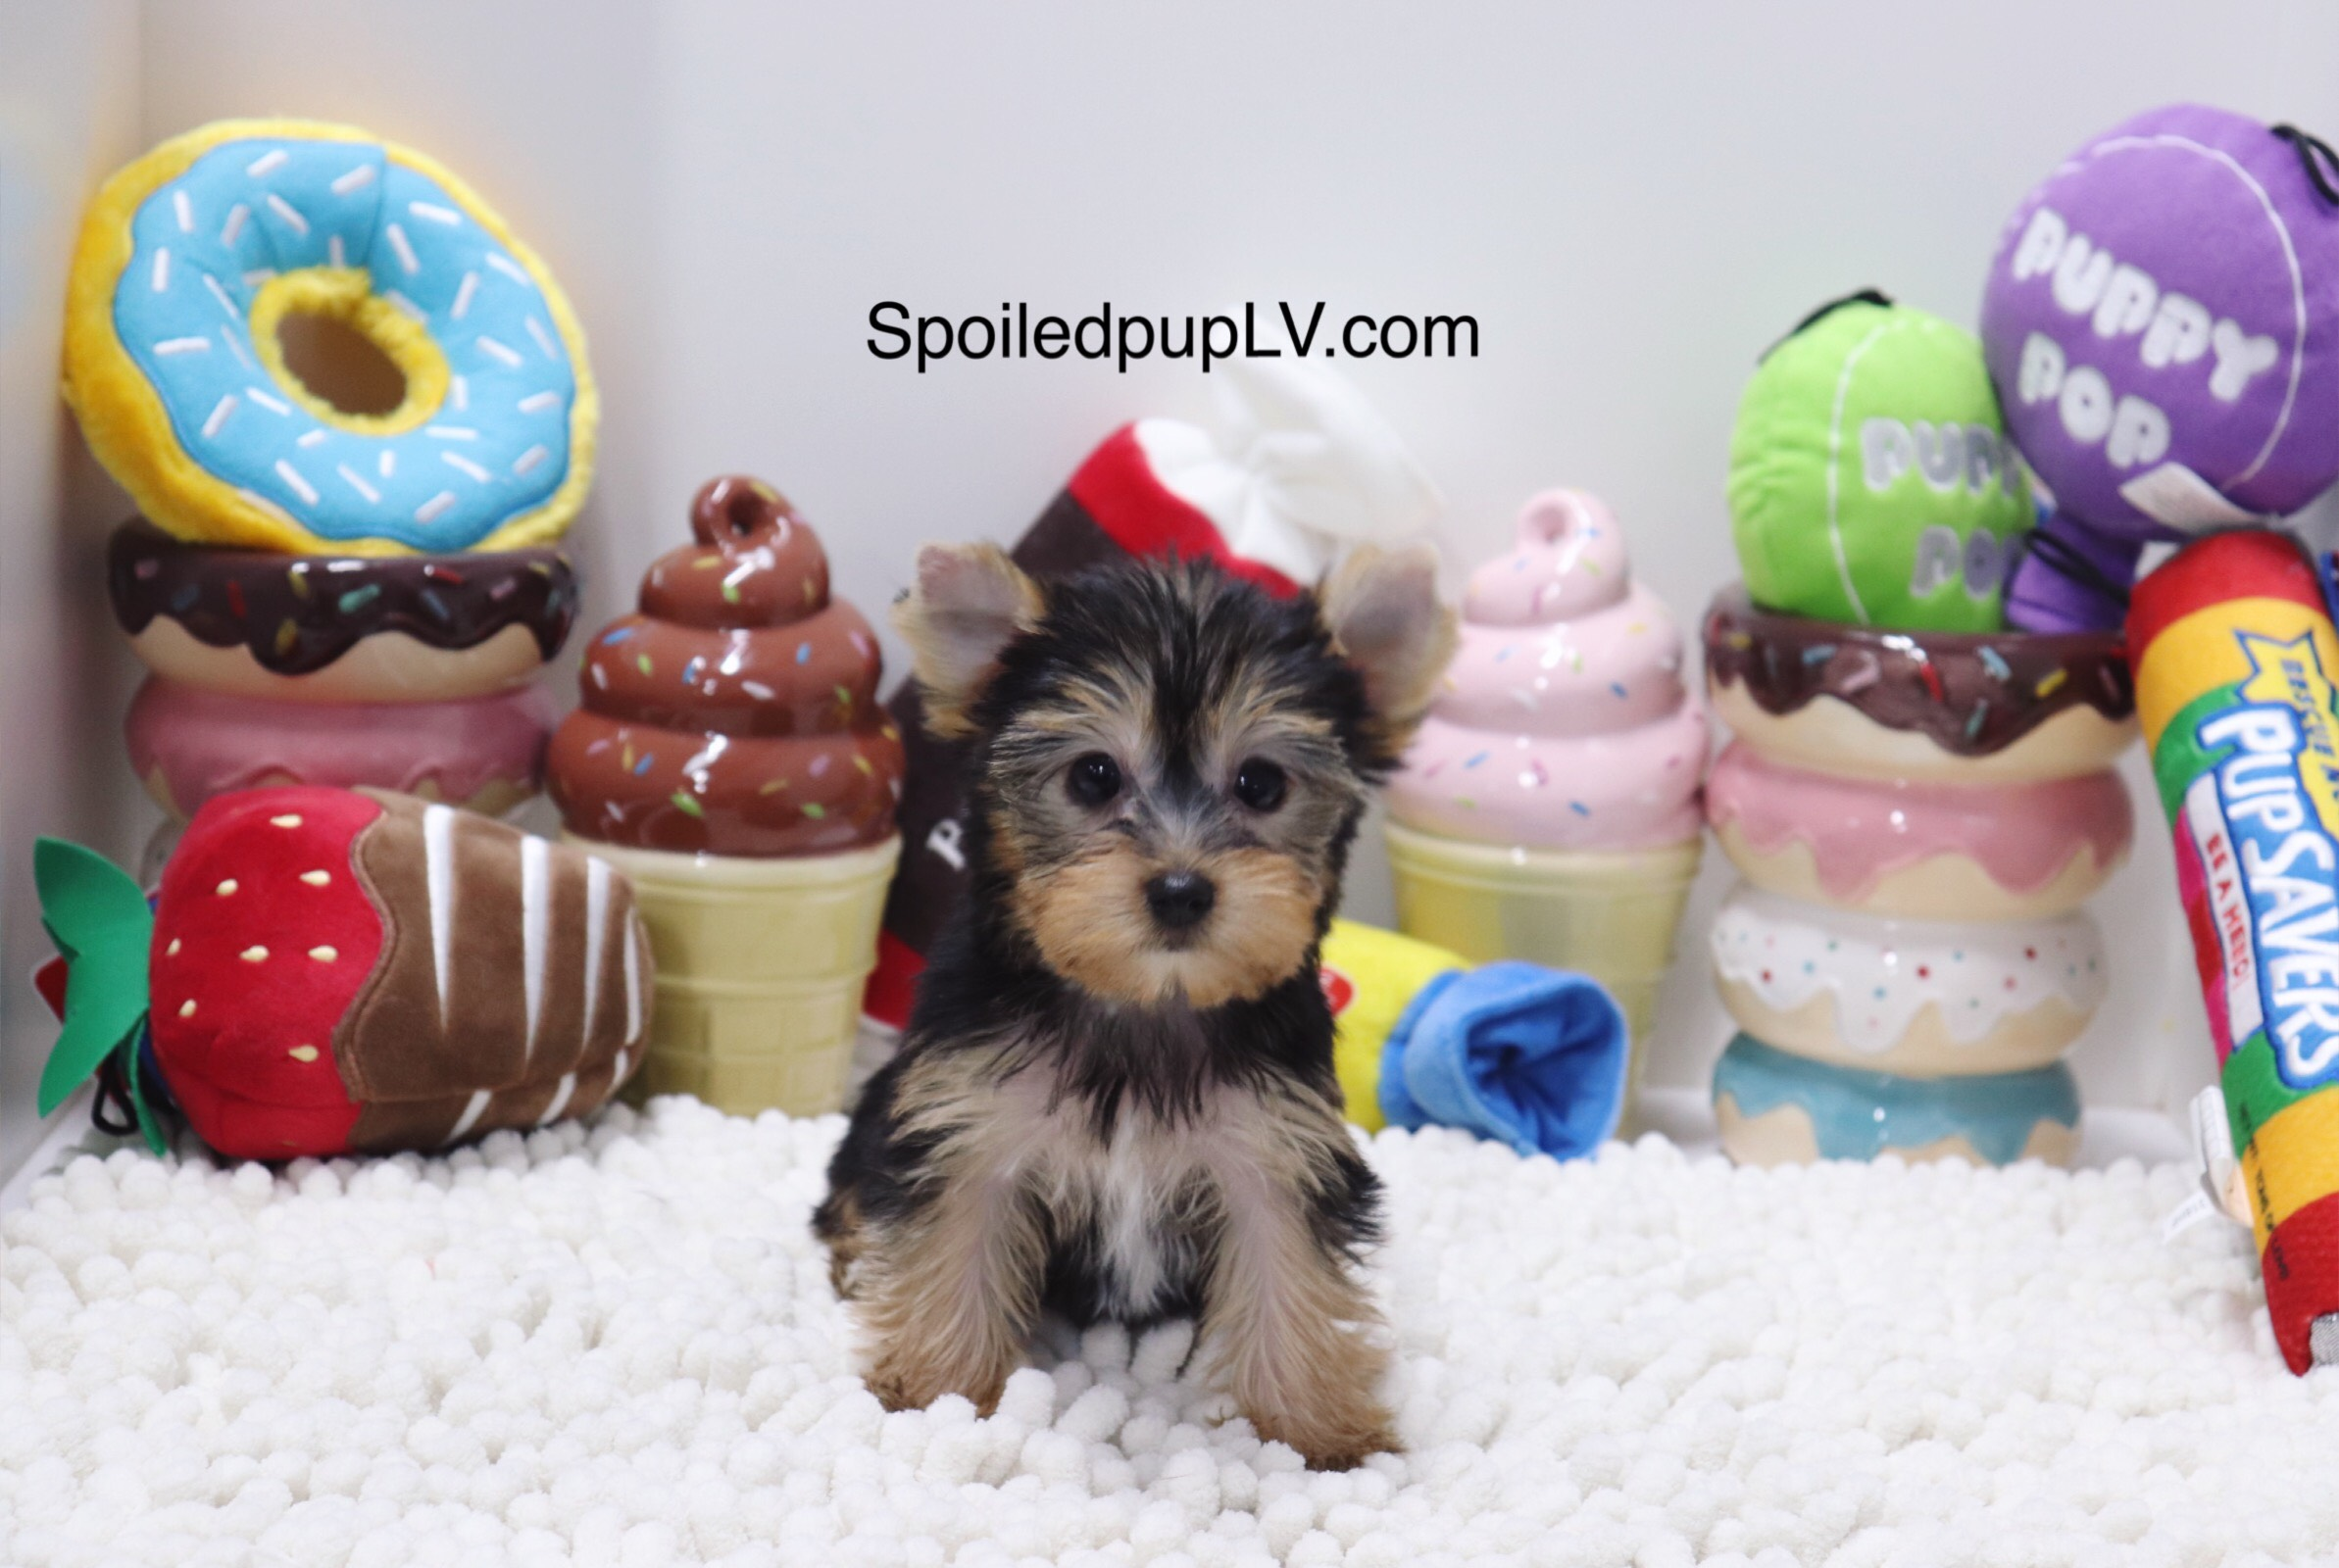 Yorkshire Terrier - Crystal - Female